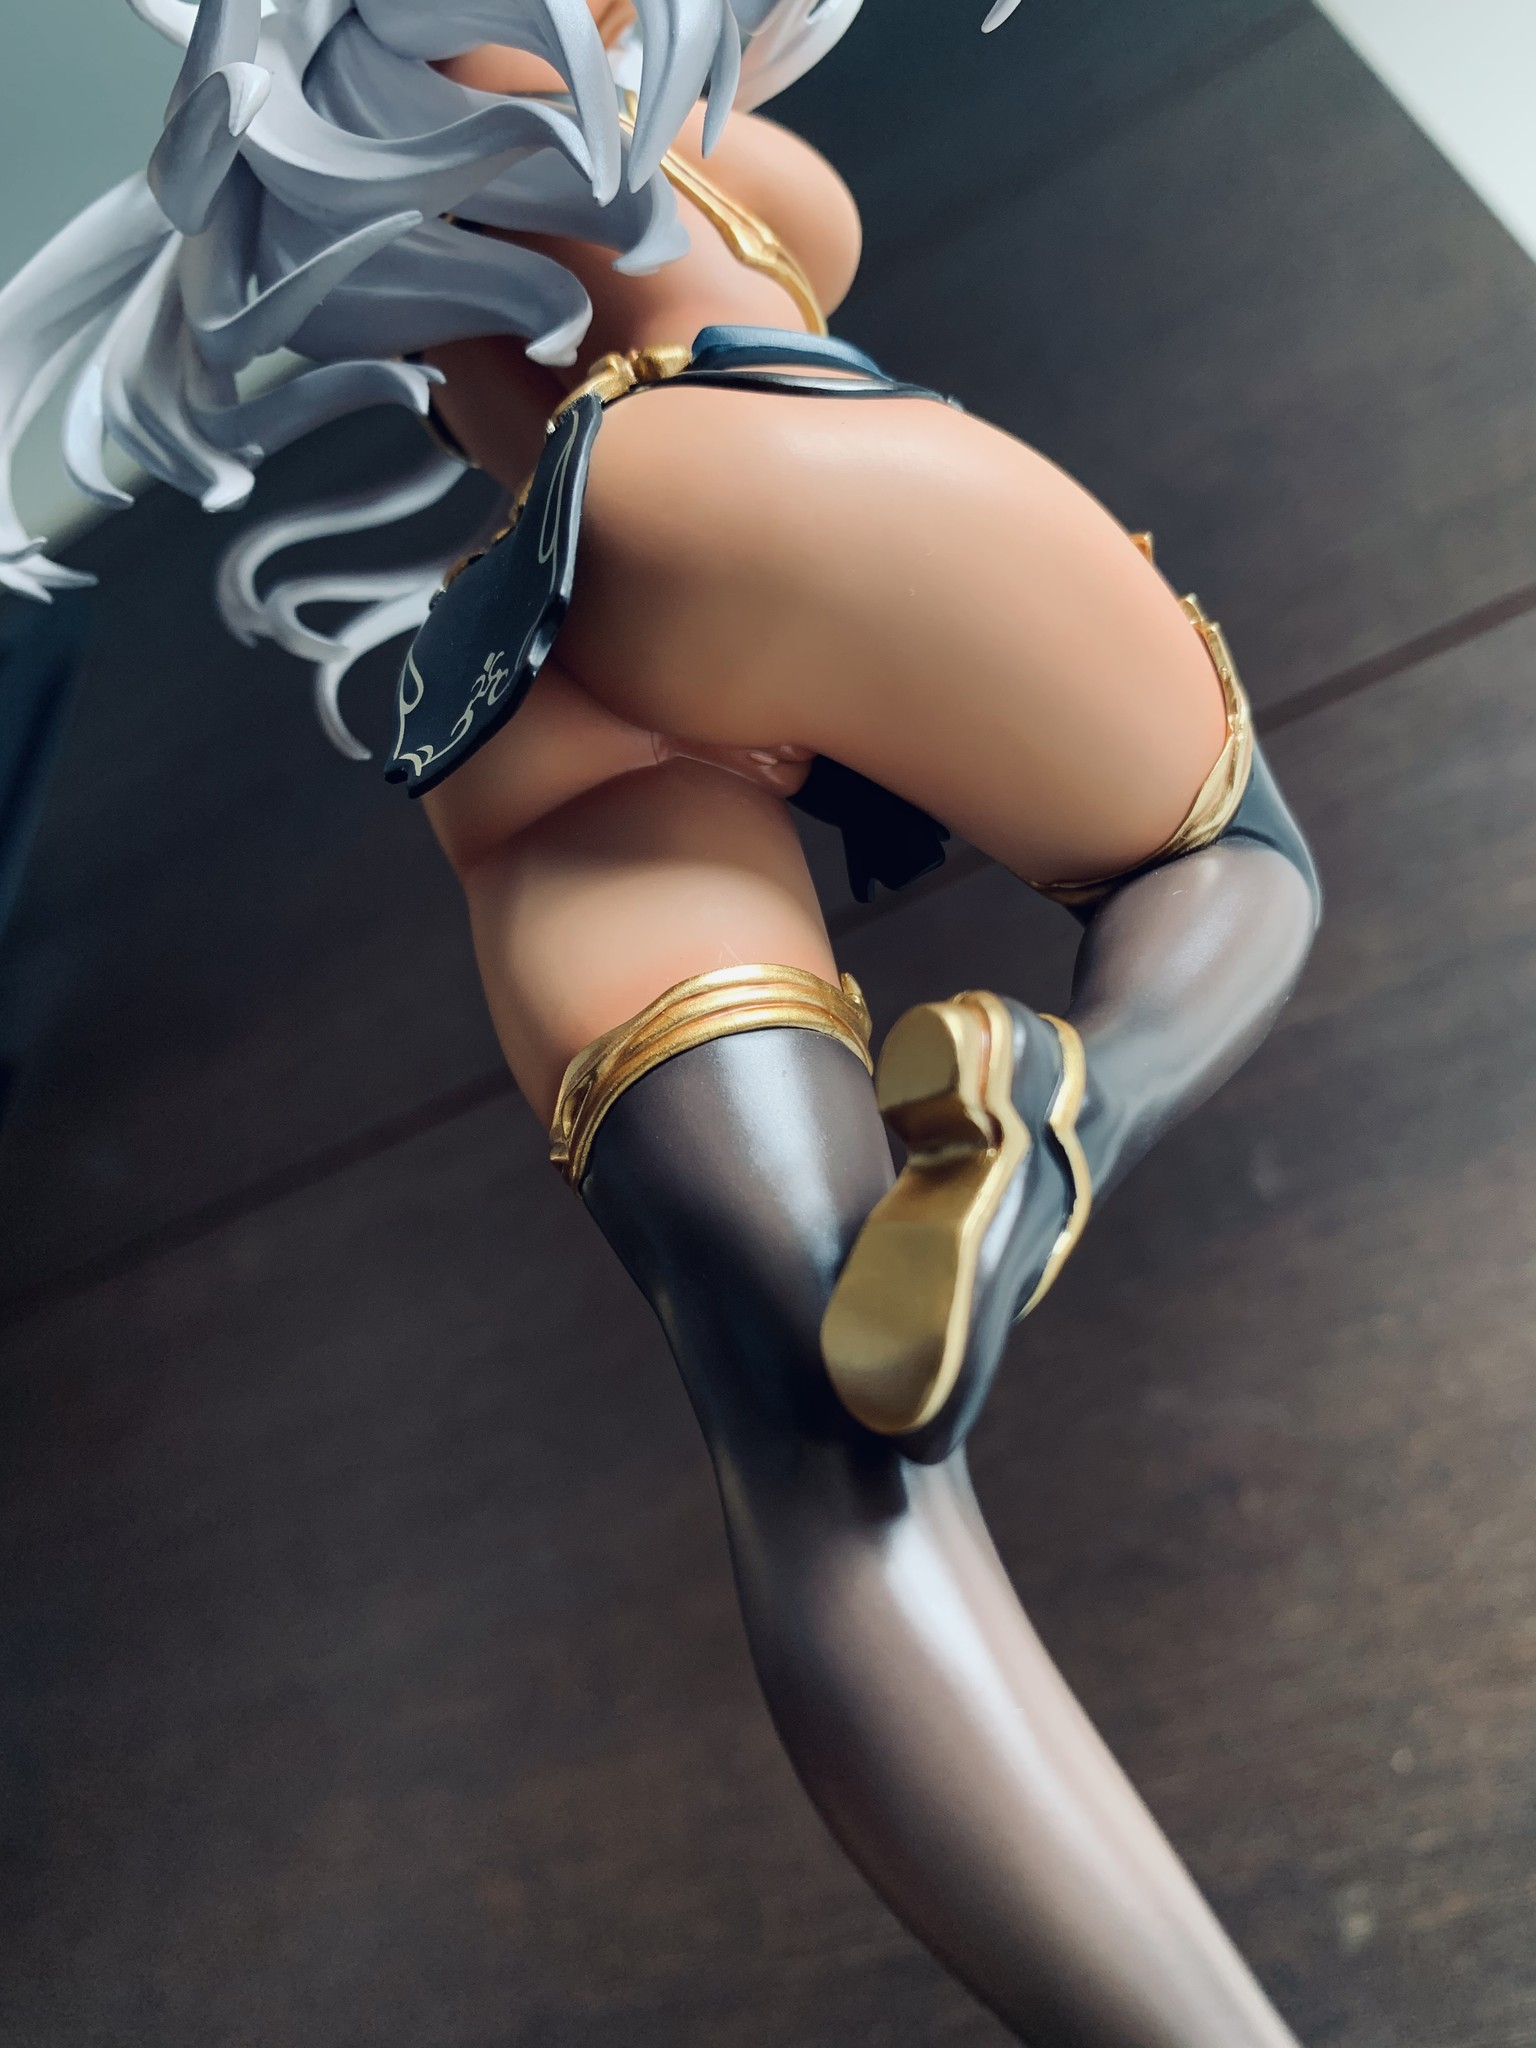 https://static.myfigurecollection.net/upload/pictures/2020/10/12/2539234.jpeg